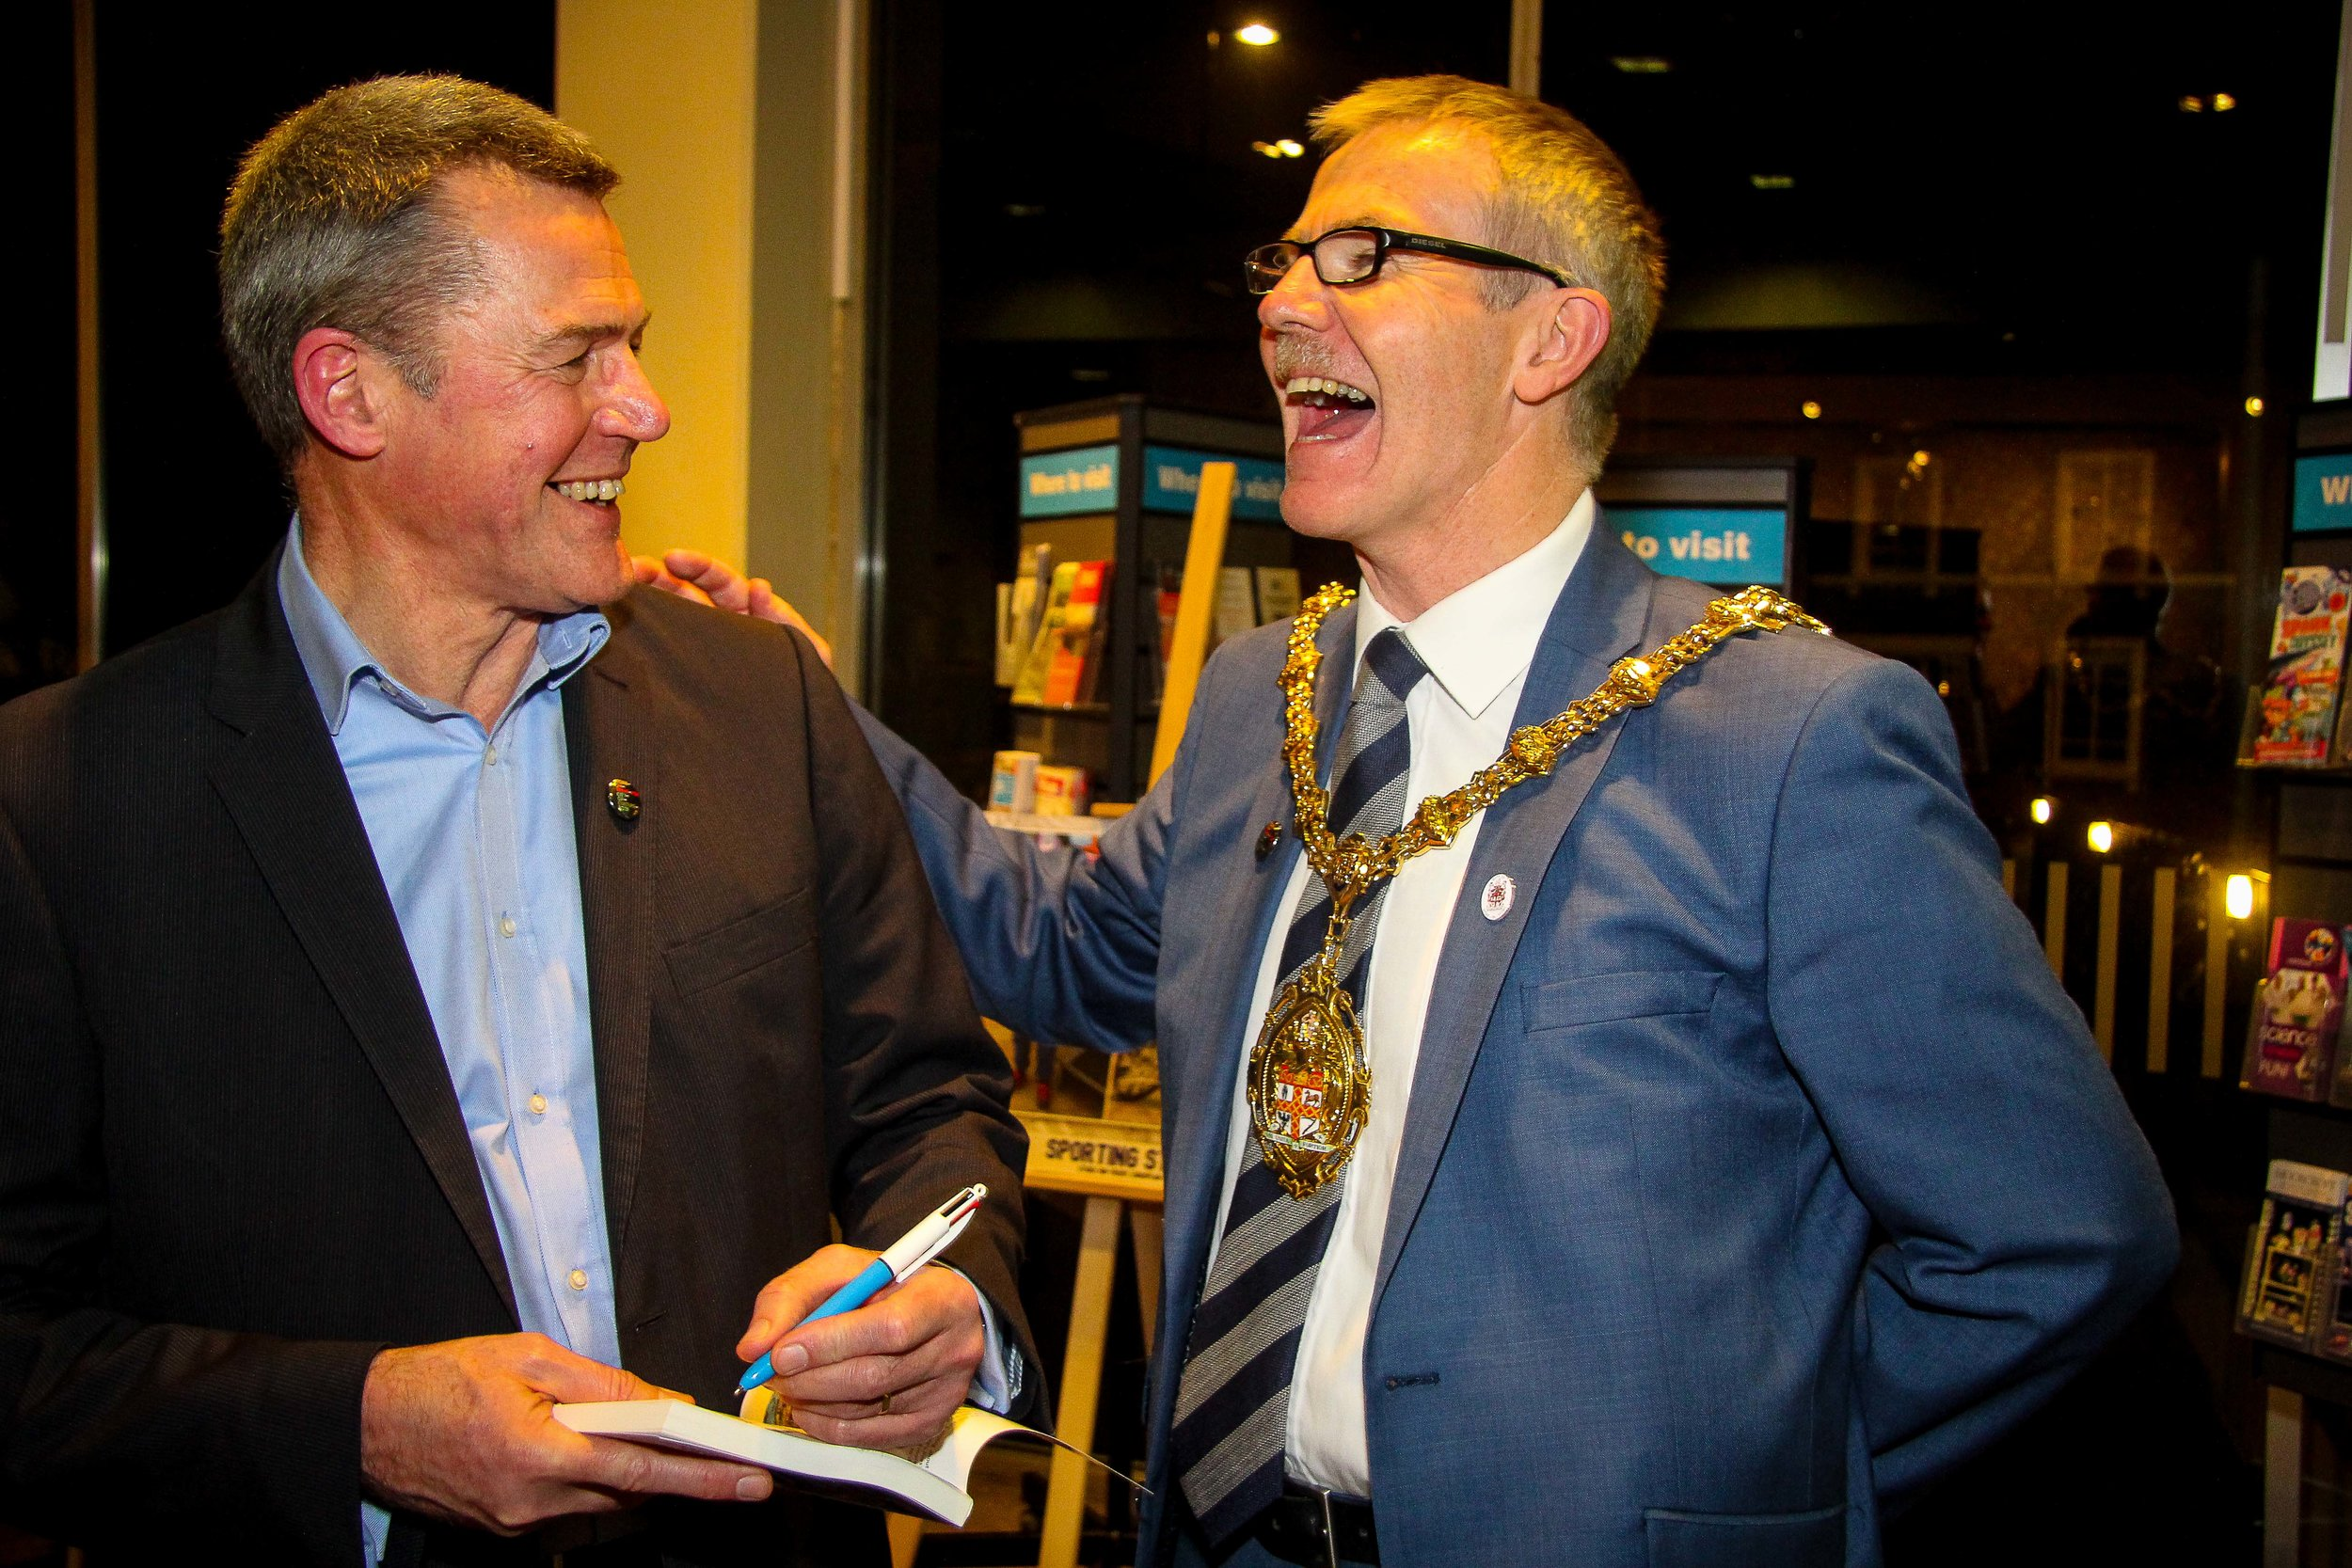 Peter enjoying a joke with Anthony Munday, the Lord Mayor of Stoke-on-Trent (and contributor to Sporting Stories 2016) at the January launch of the new book